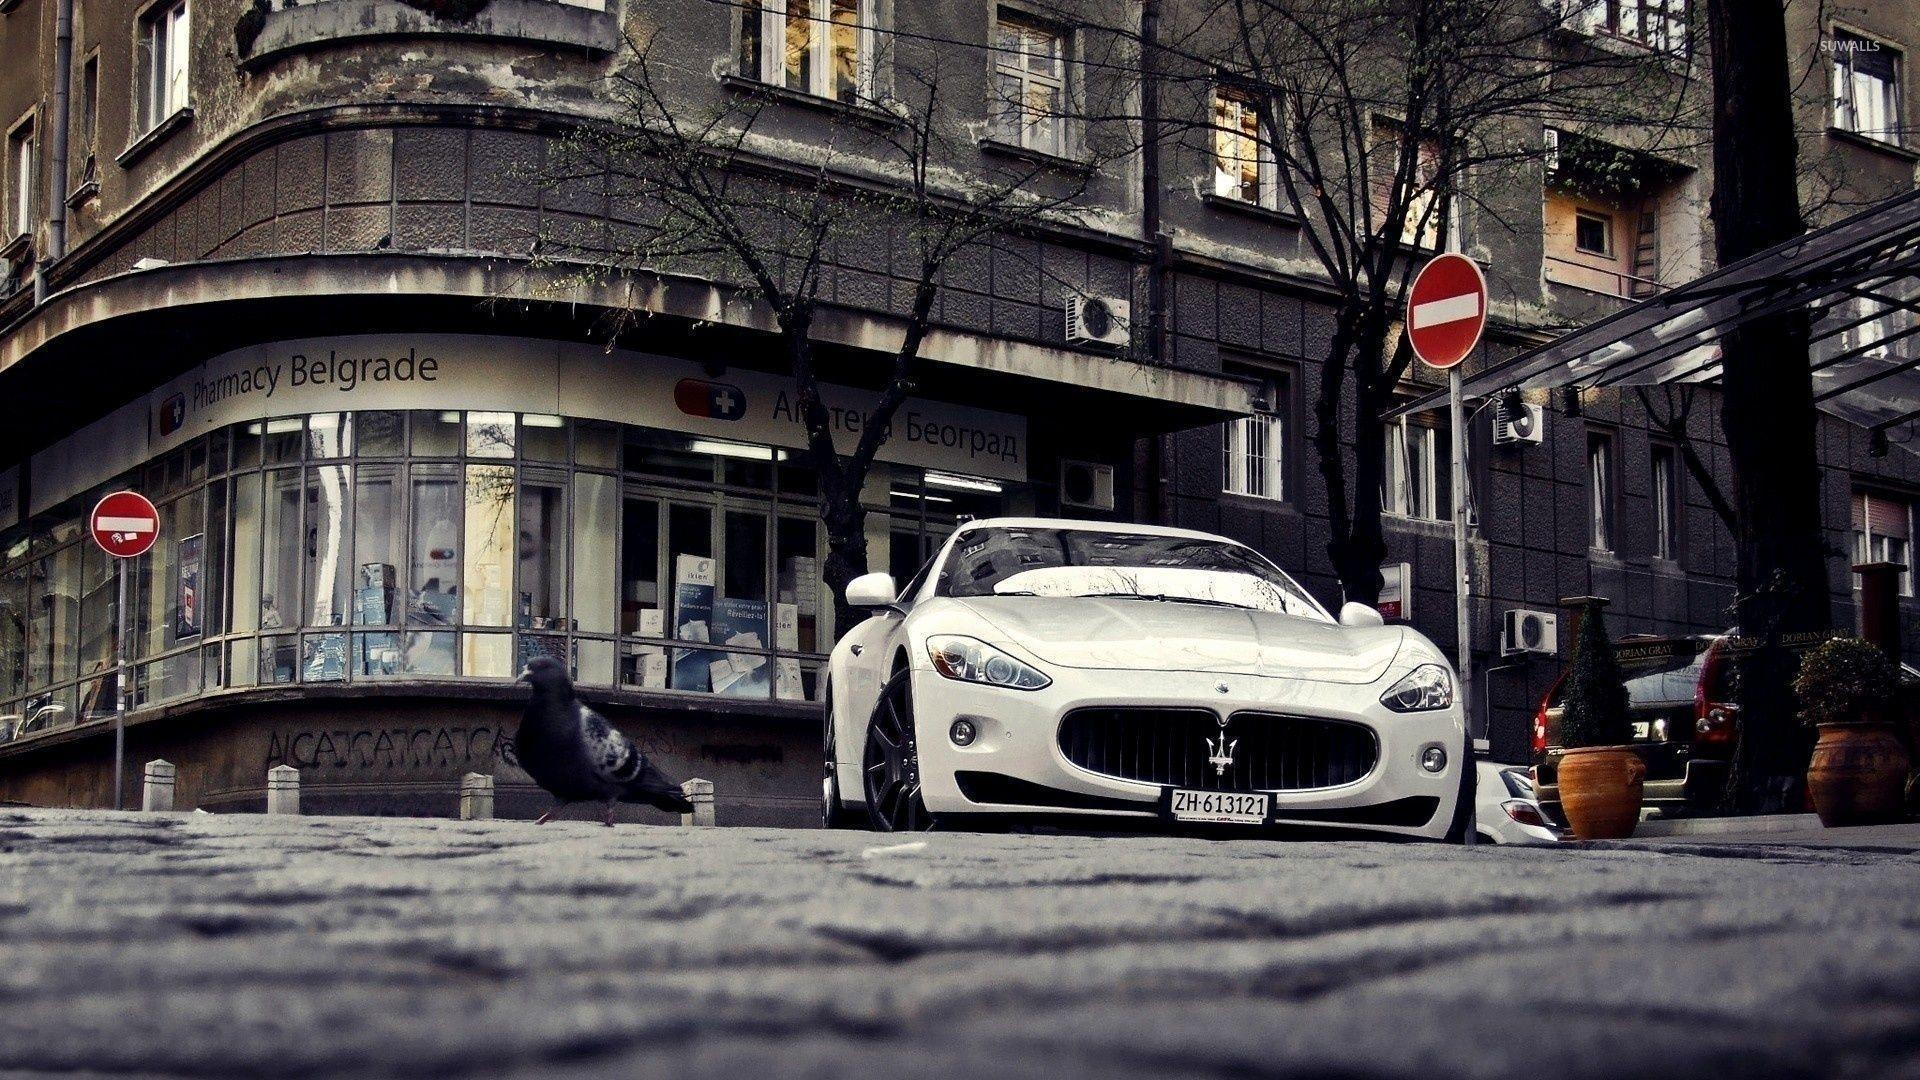 Maserati Quattroporte wallpaper - Car wallpapers - #47844